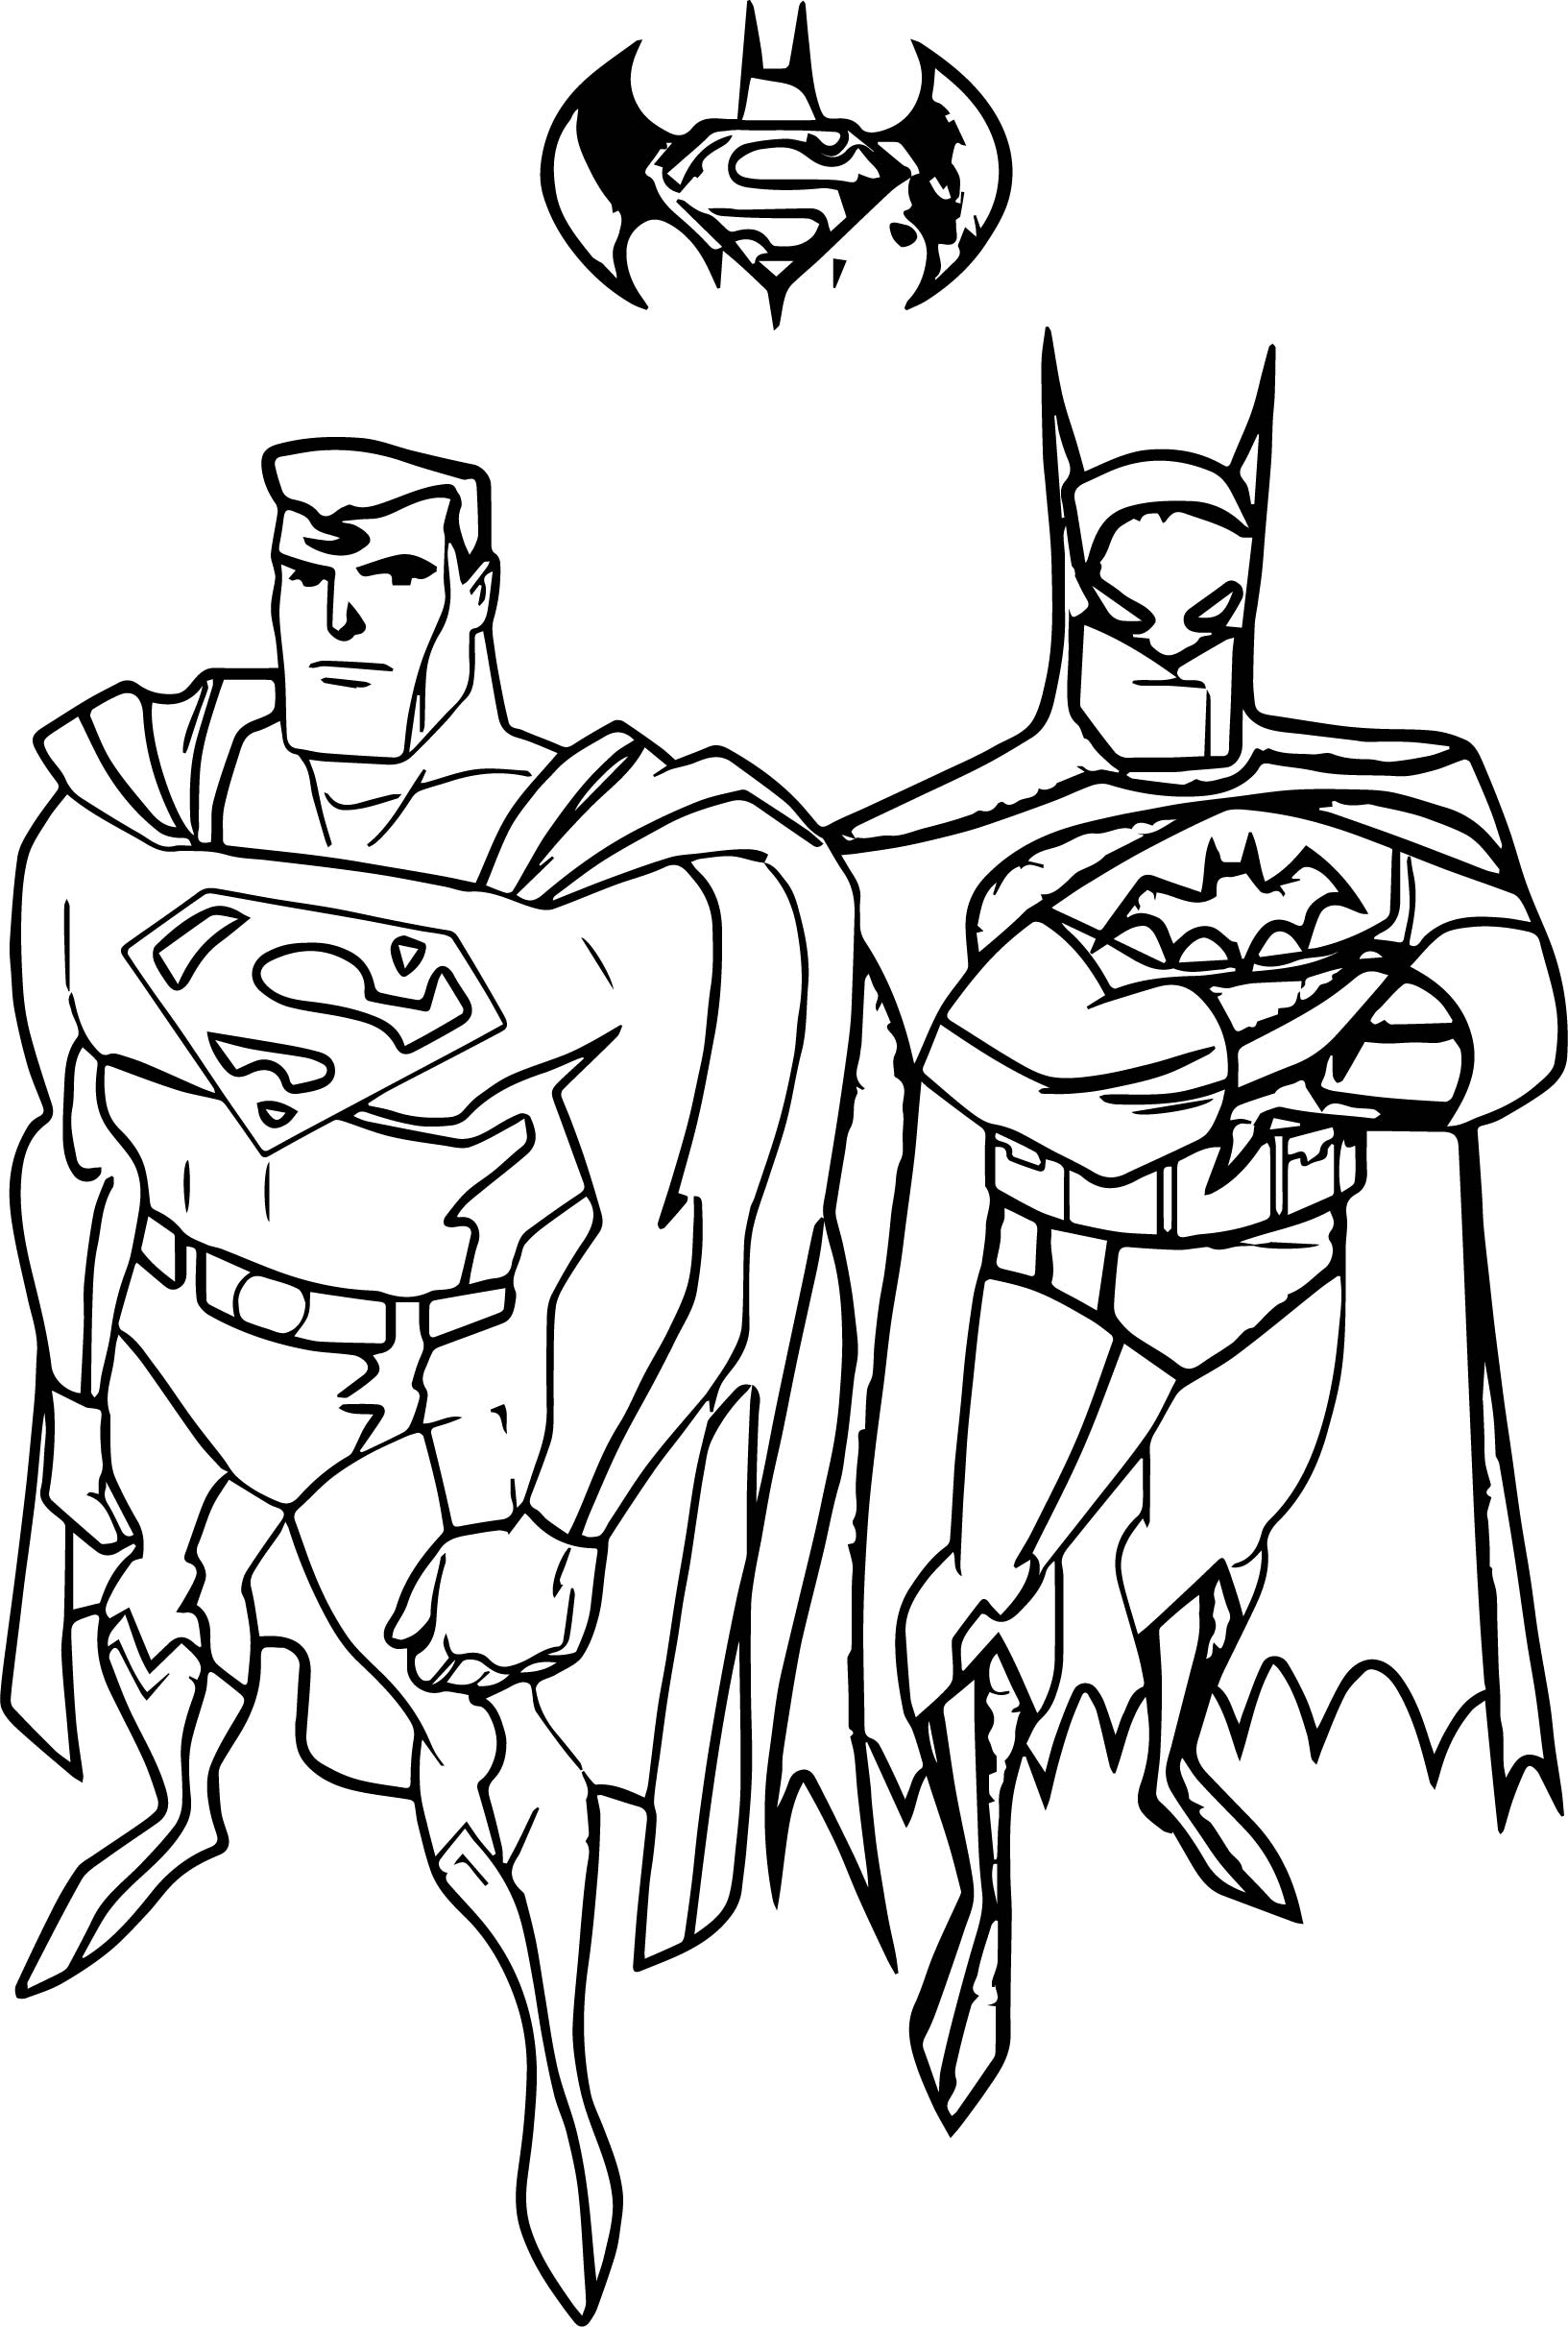 superman batman coloring pages superman and batman coloring pages coloring pages for kids pages superman batman coloring